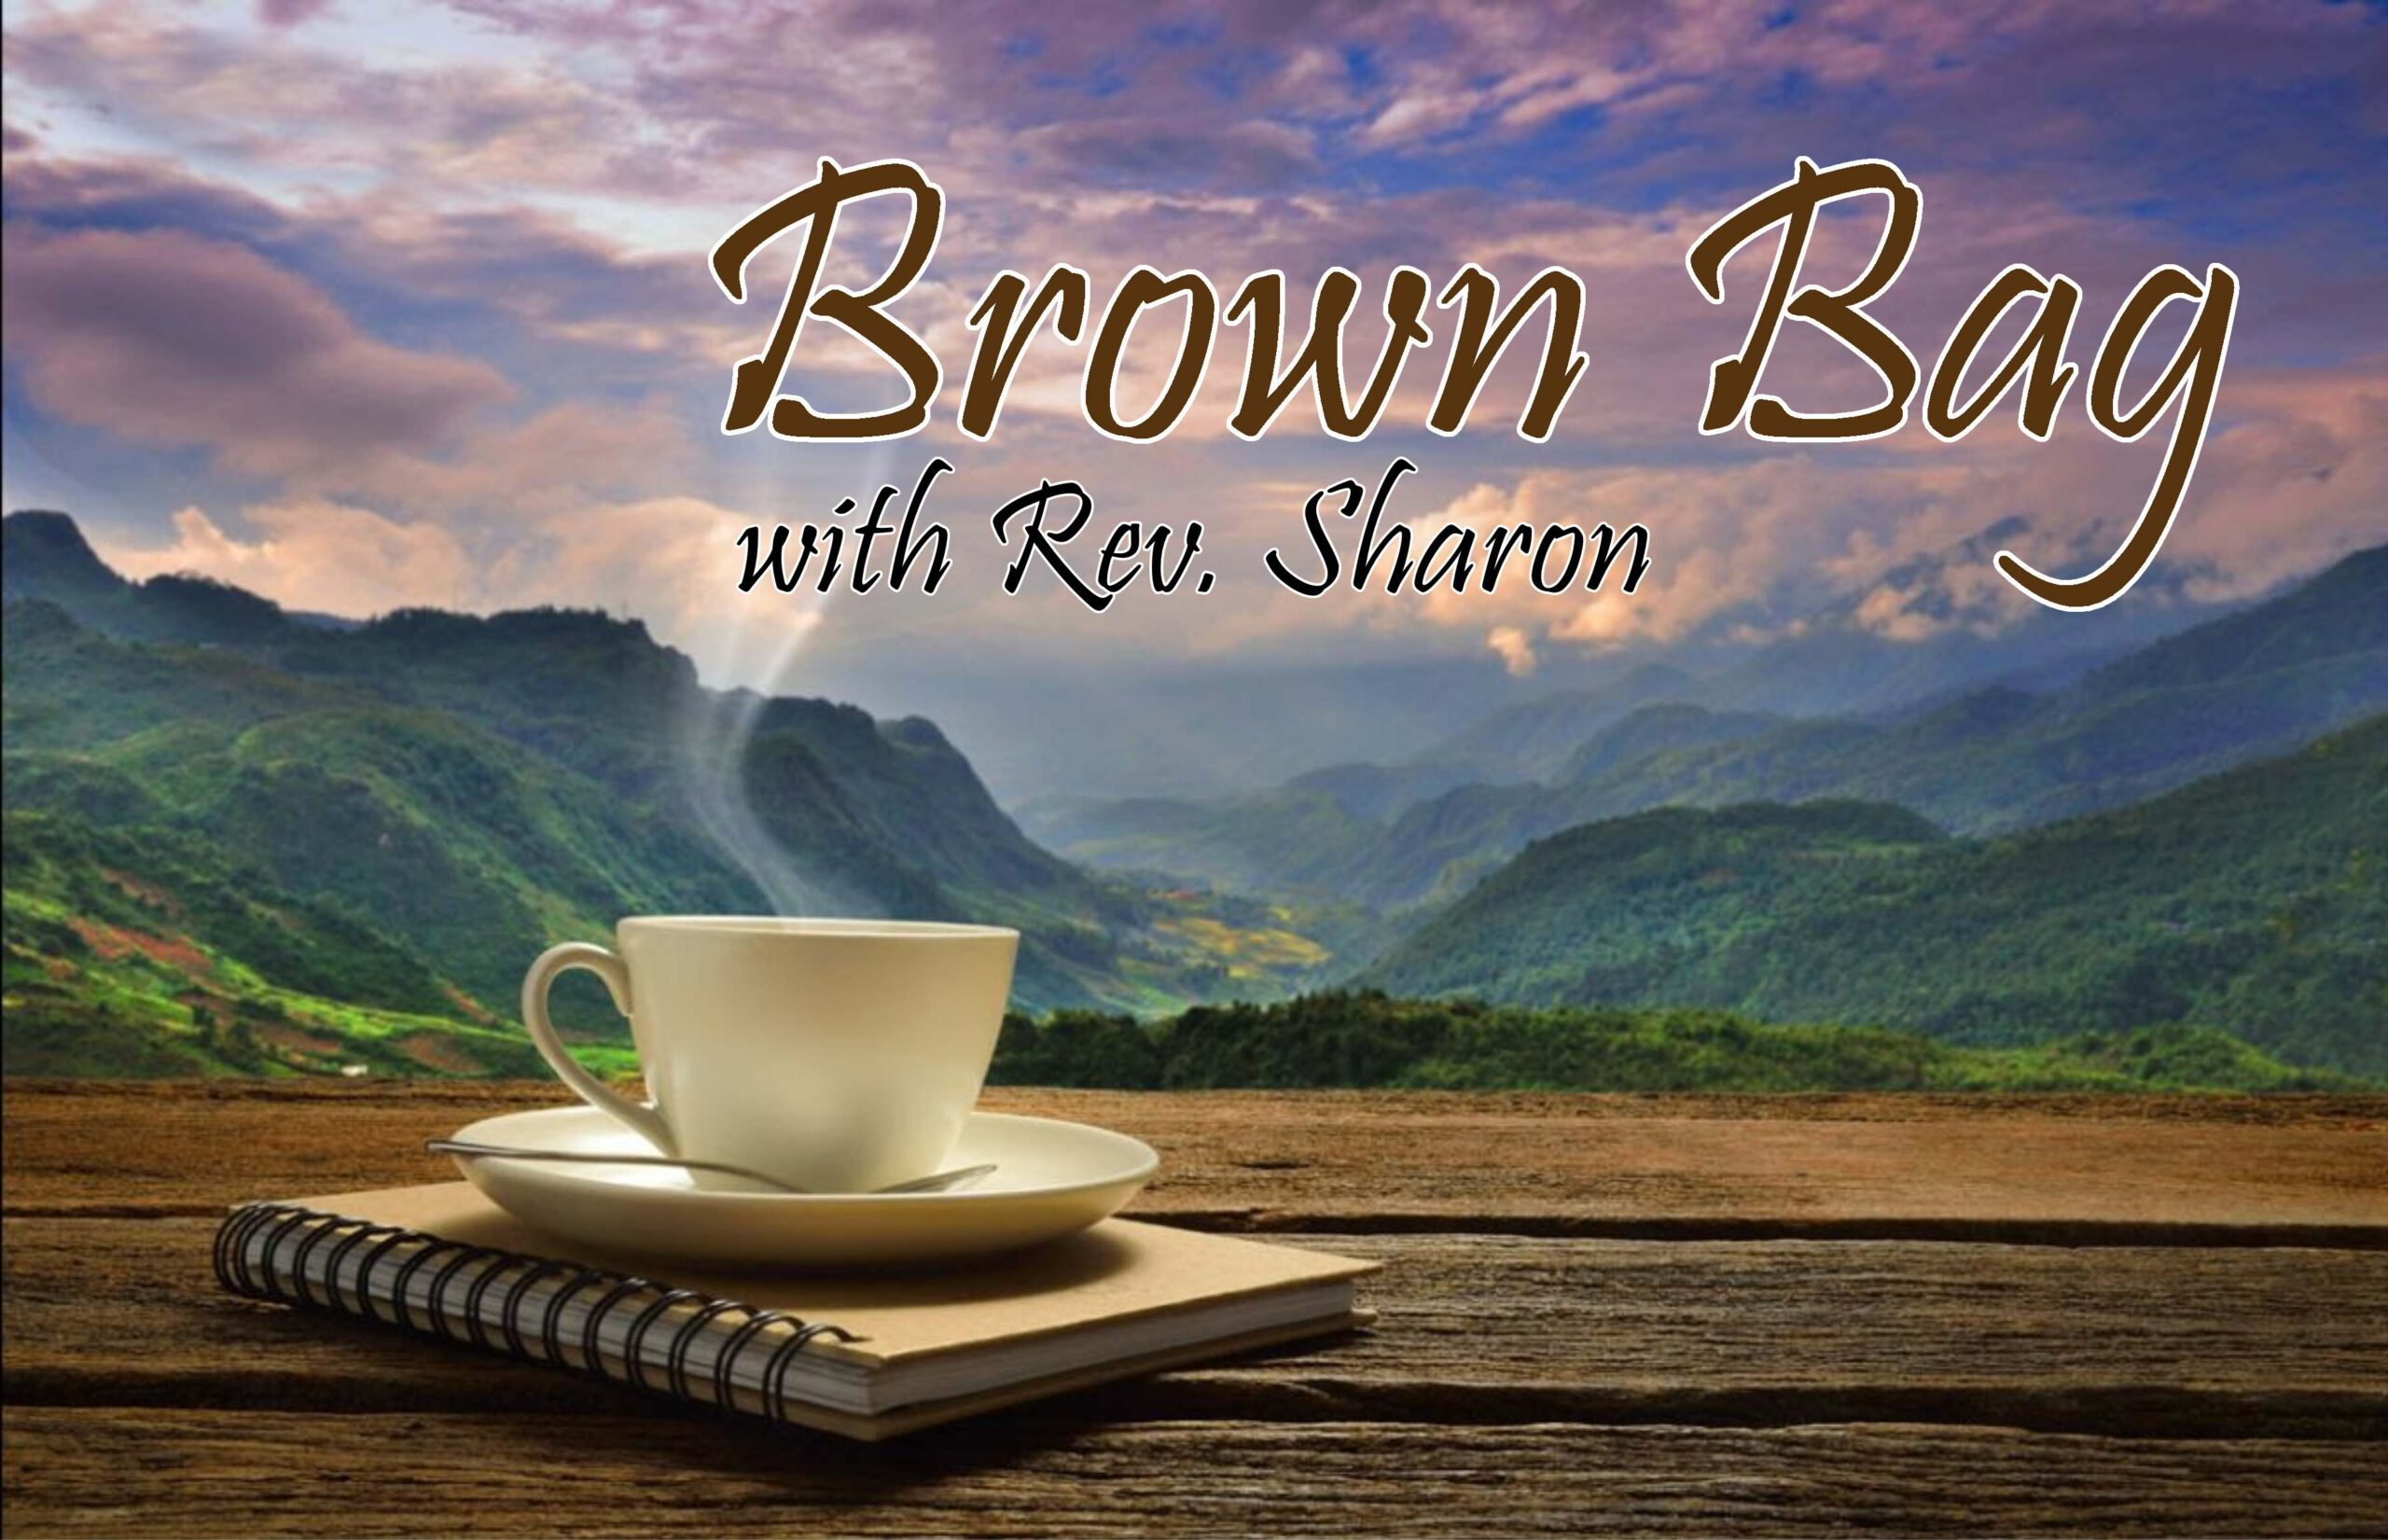 (Suspended) Brown Bag with Rev. Sharon